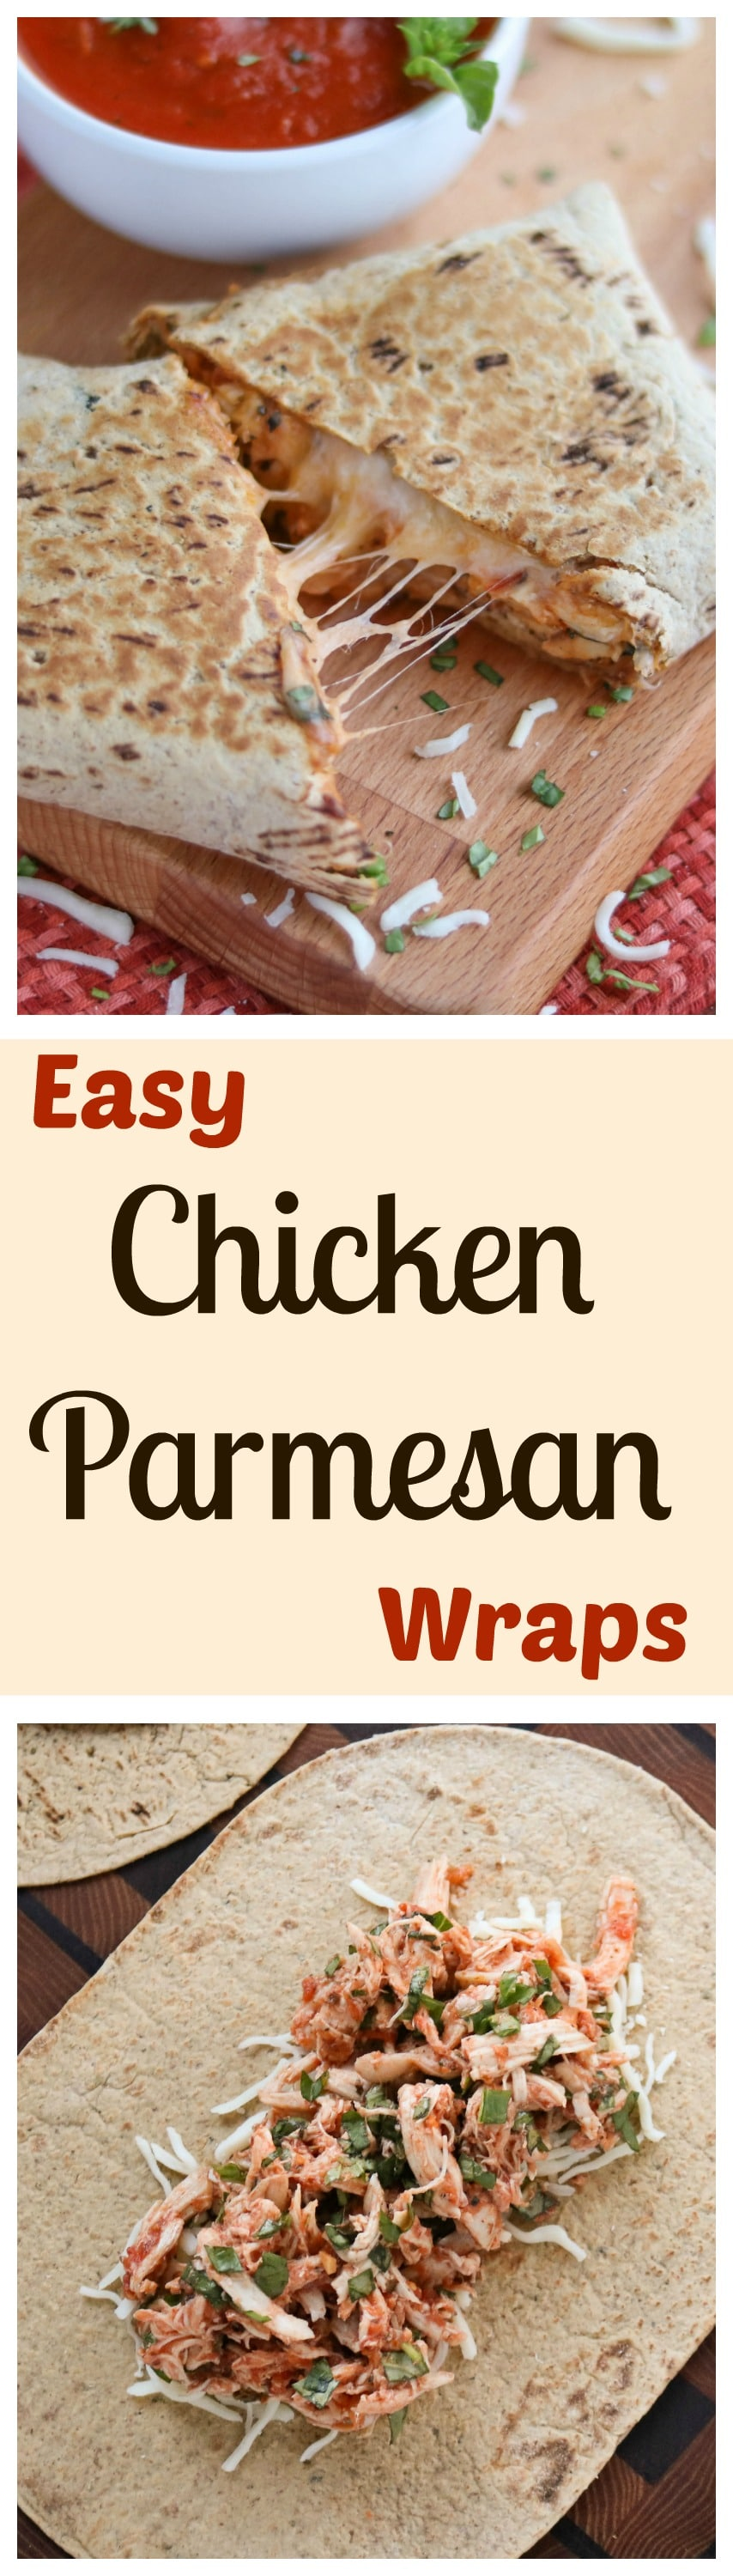 Easy Chicken Parmesan Wraps AD {www.TwoHealthyKitchens.com}